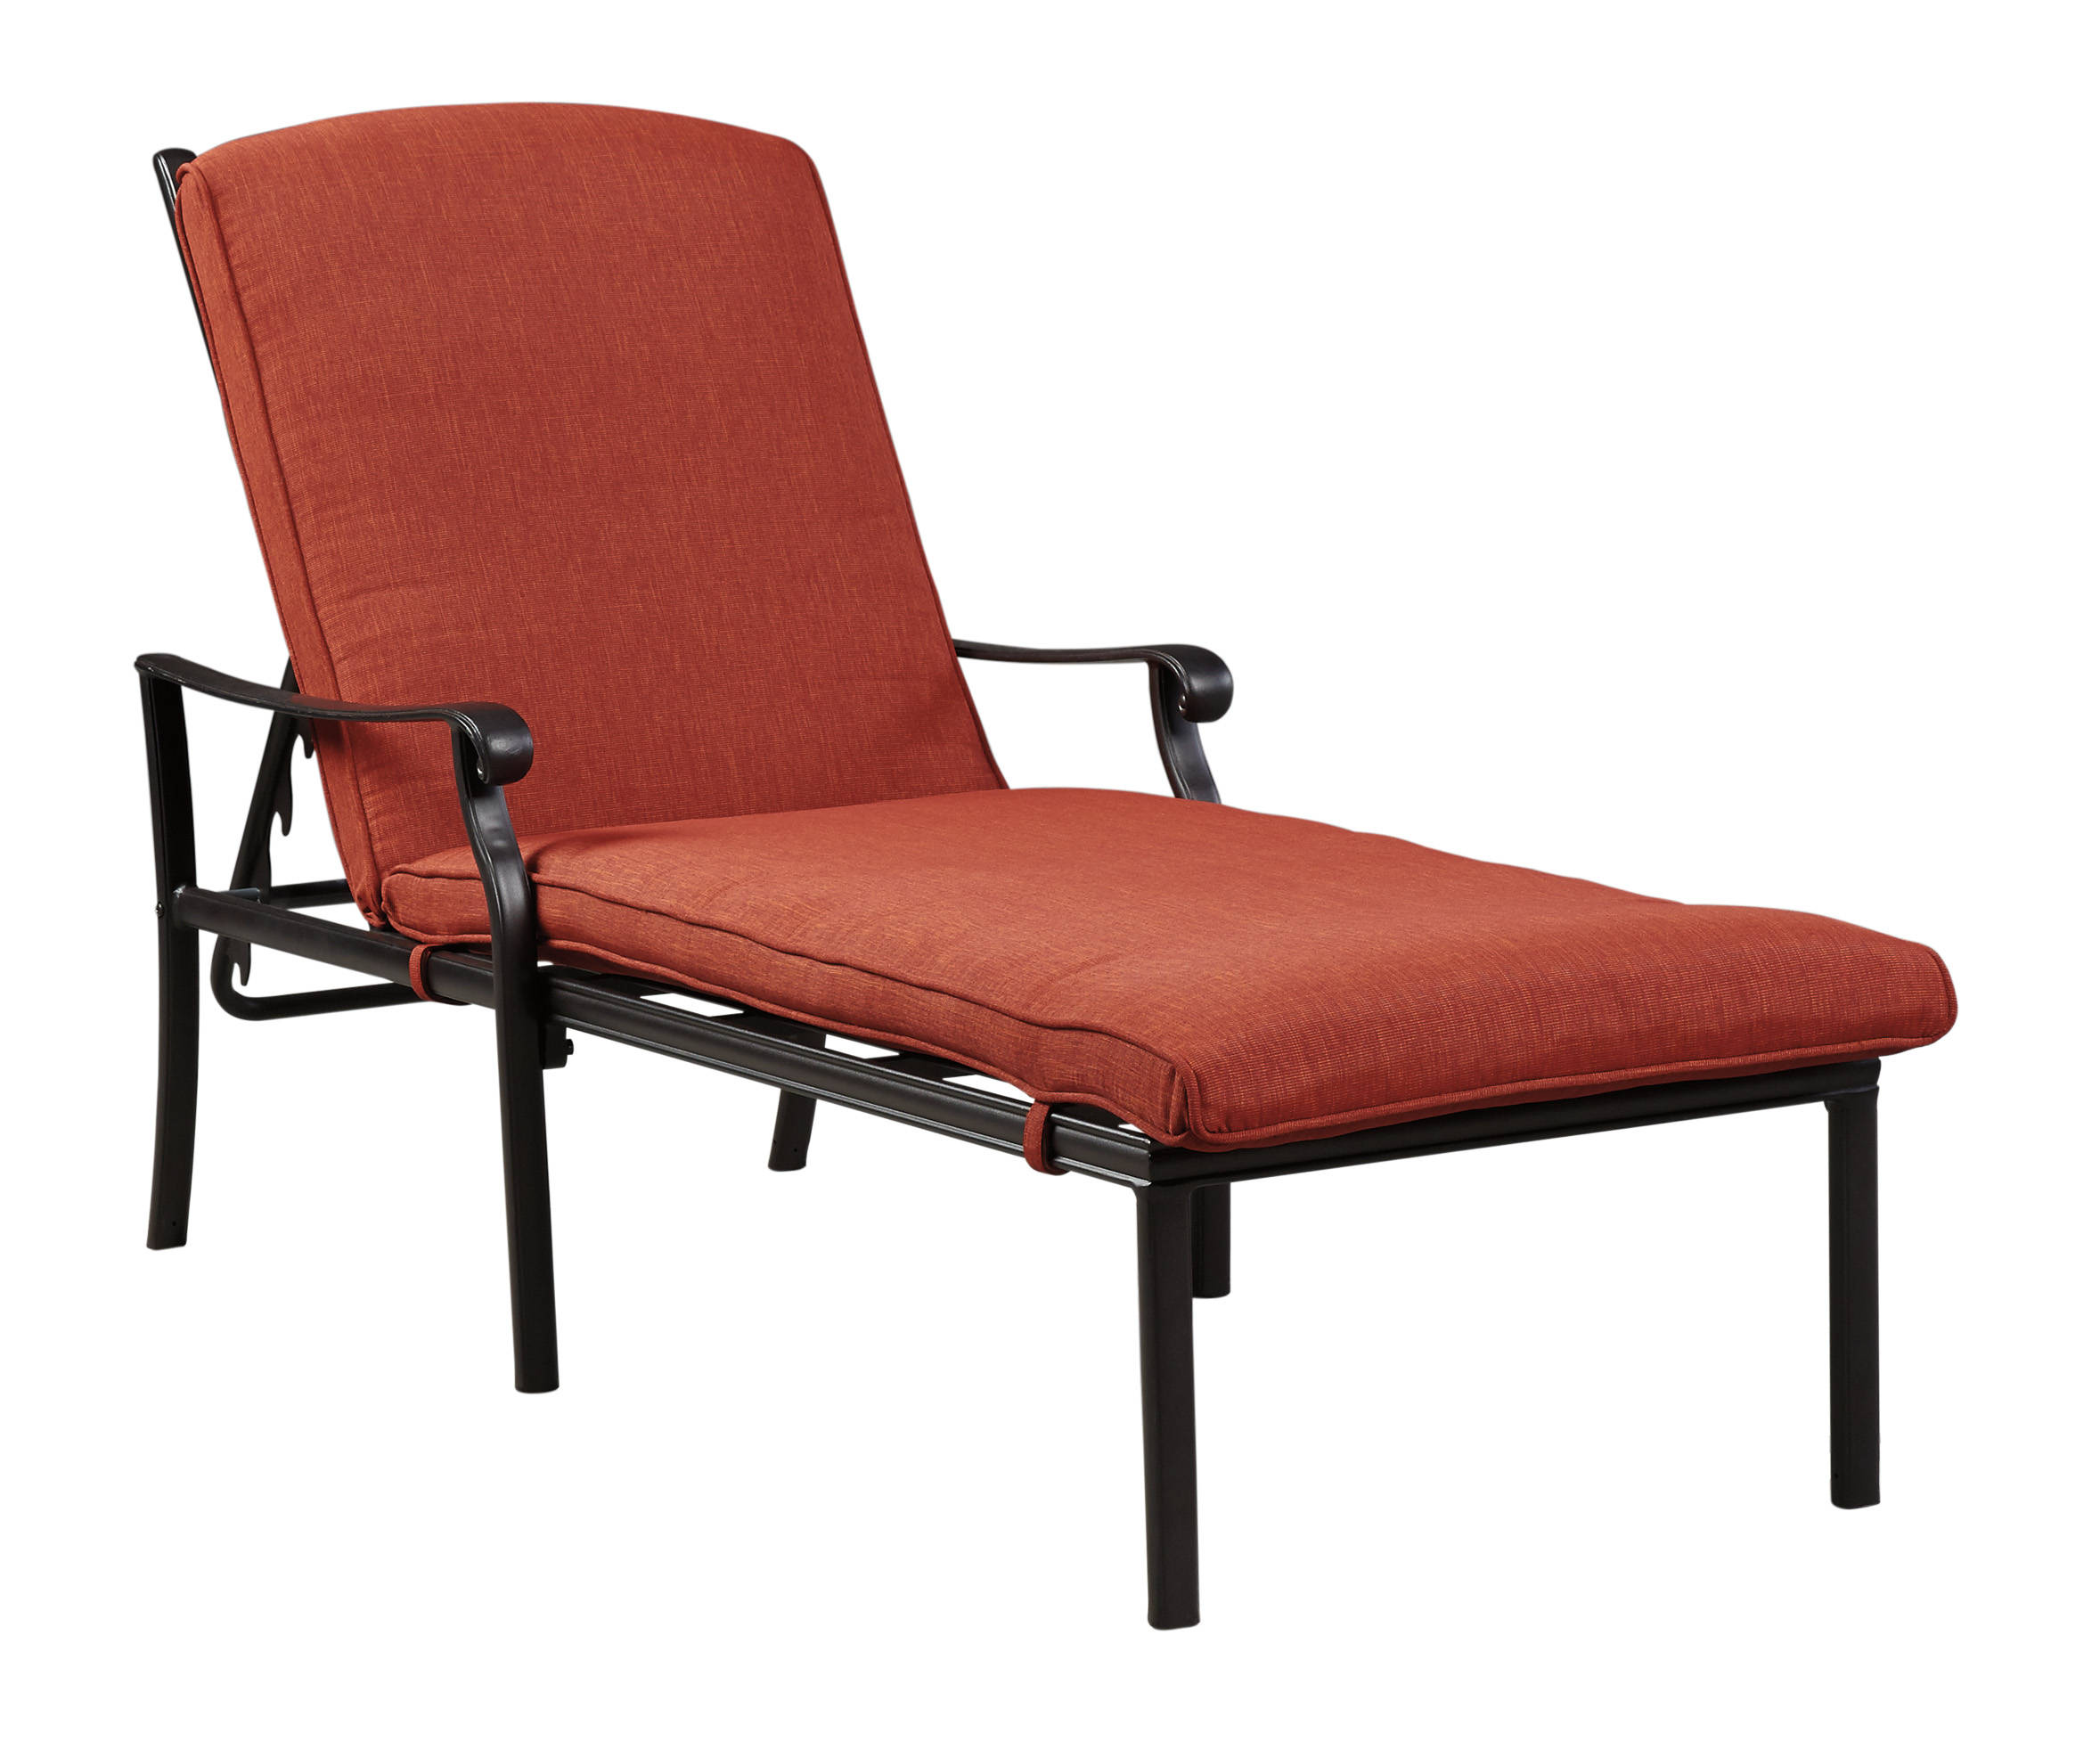 Ashley Furniture Tanglevale Chaise Lounge With Cushion Click To Enlarge